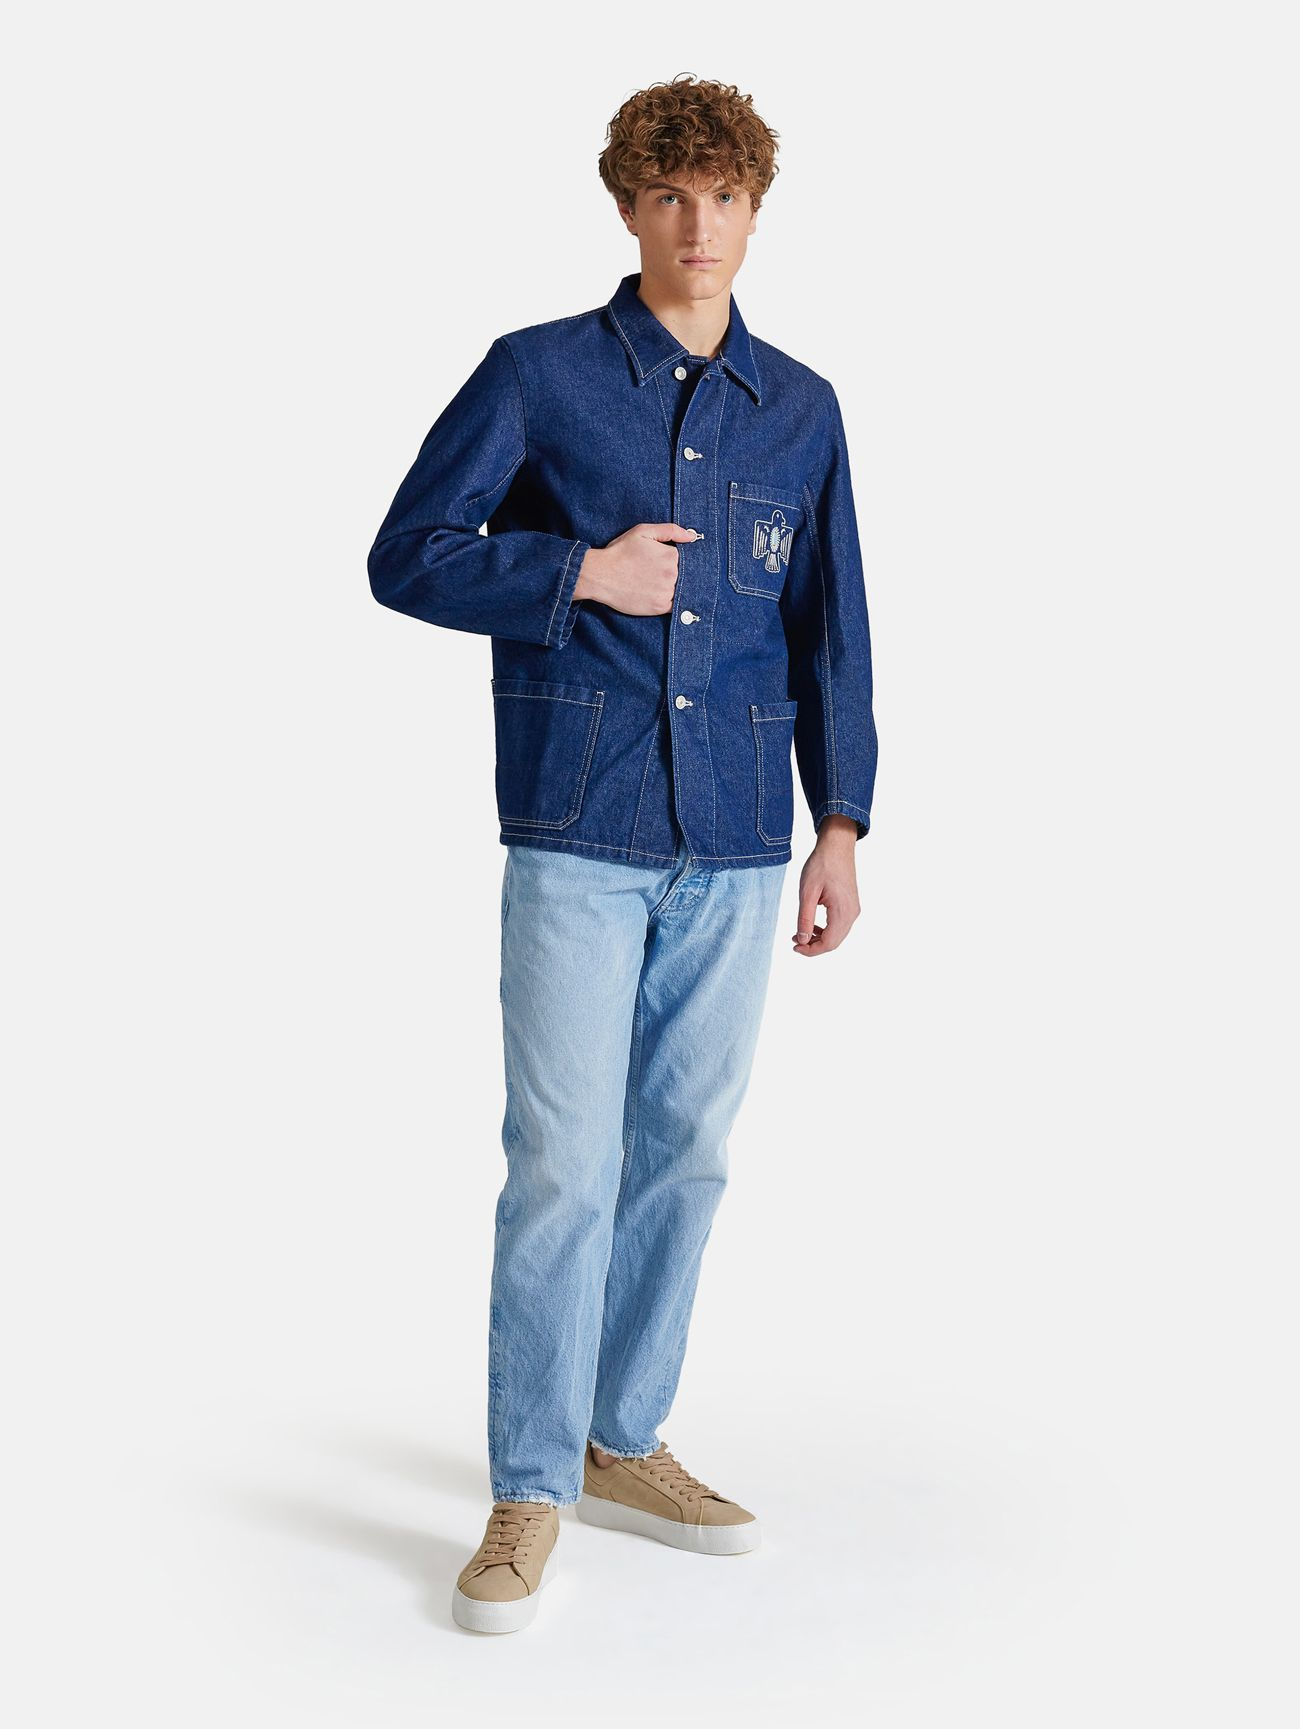 FRENCH EMBROIDERY WORK JACKET RINSE WASH NAVY BLUE